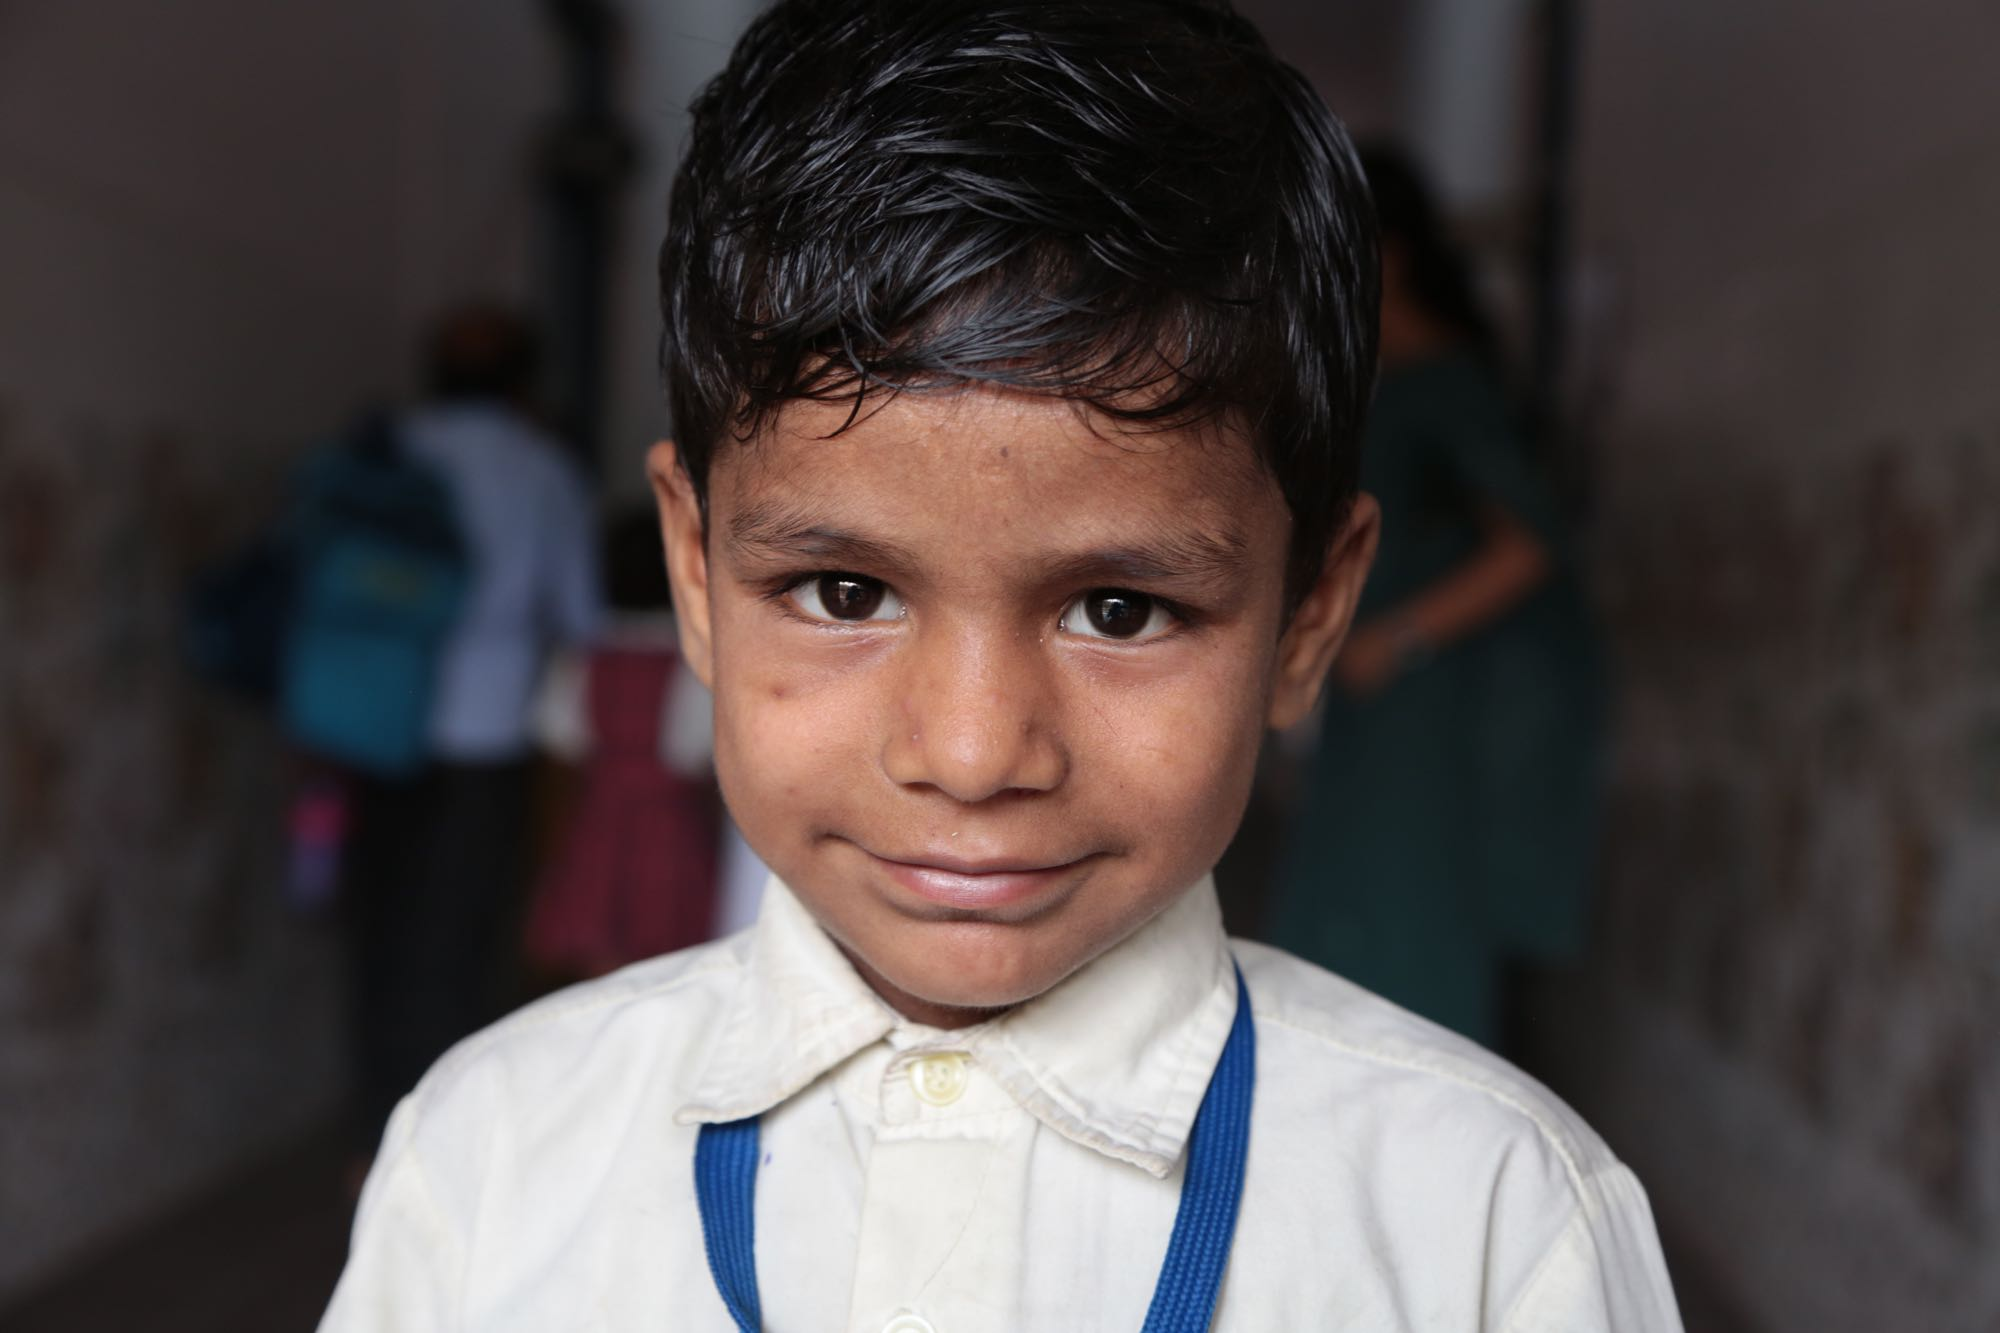 Shubham Raj - (S2S-174)Currently in need of sponsorship. Click here to sponsor Shubham Raj or another scholar for just $30/month!Sponsored previously by the Breen family, USA